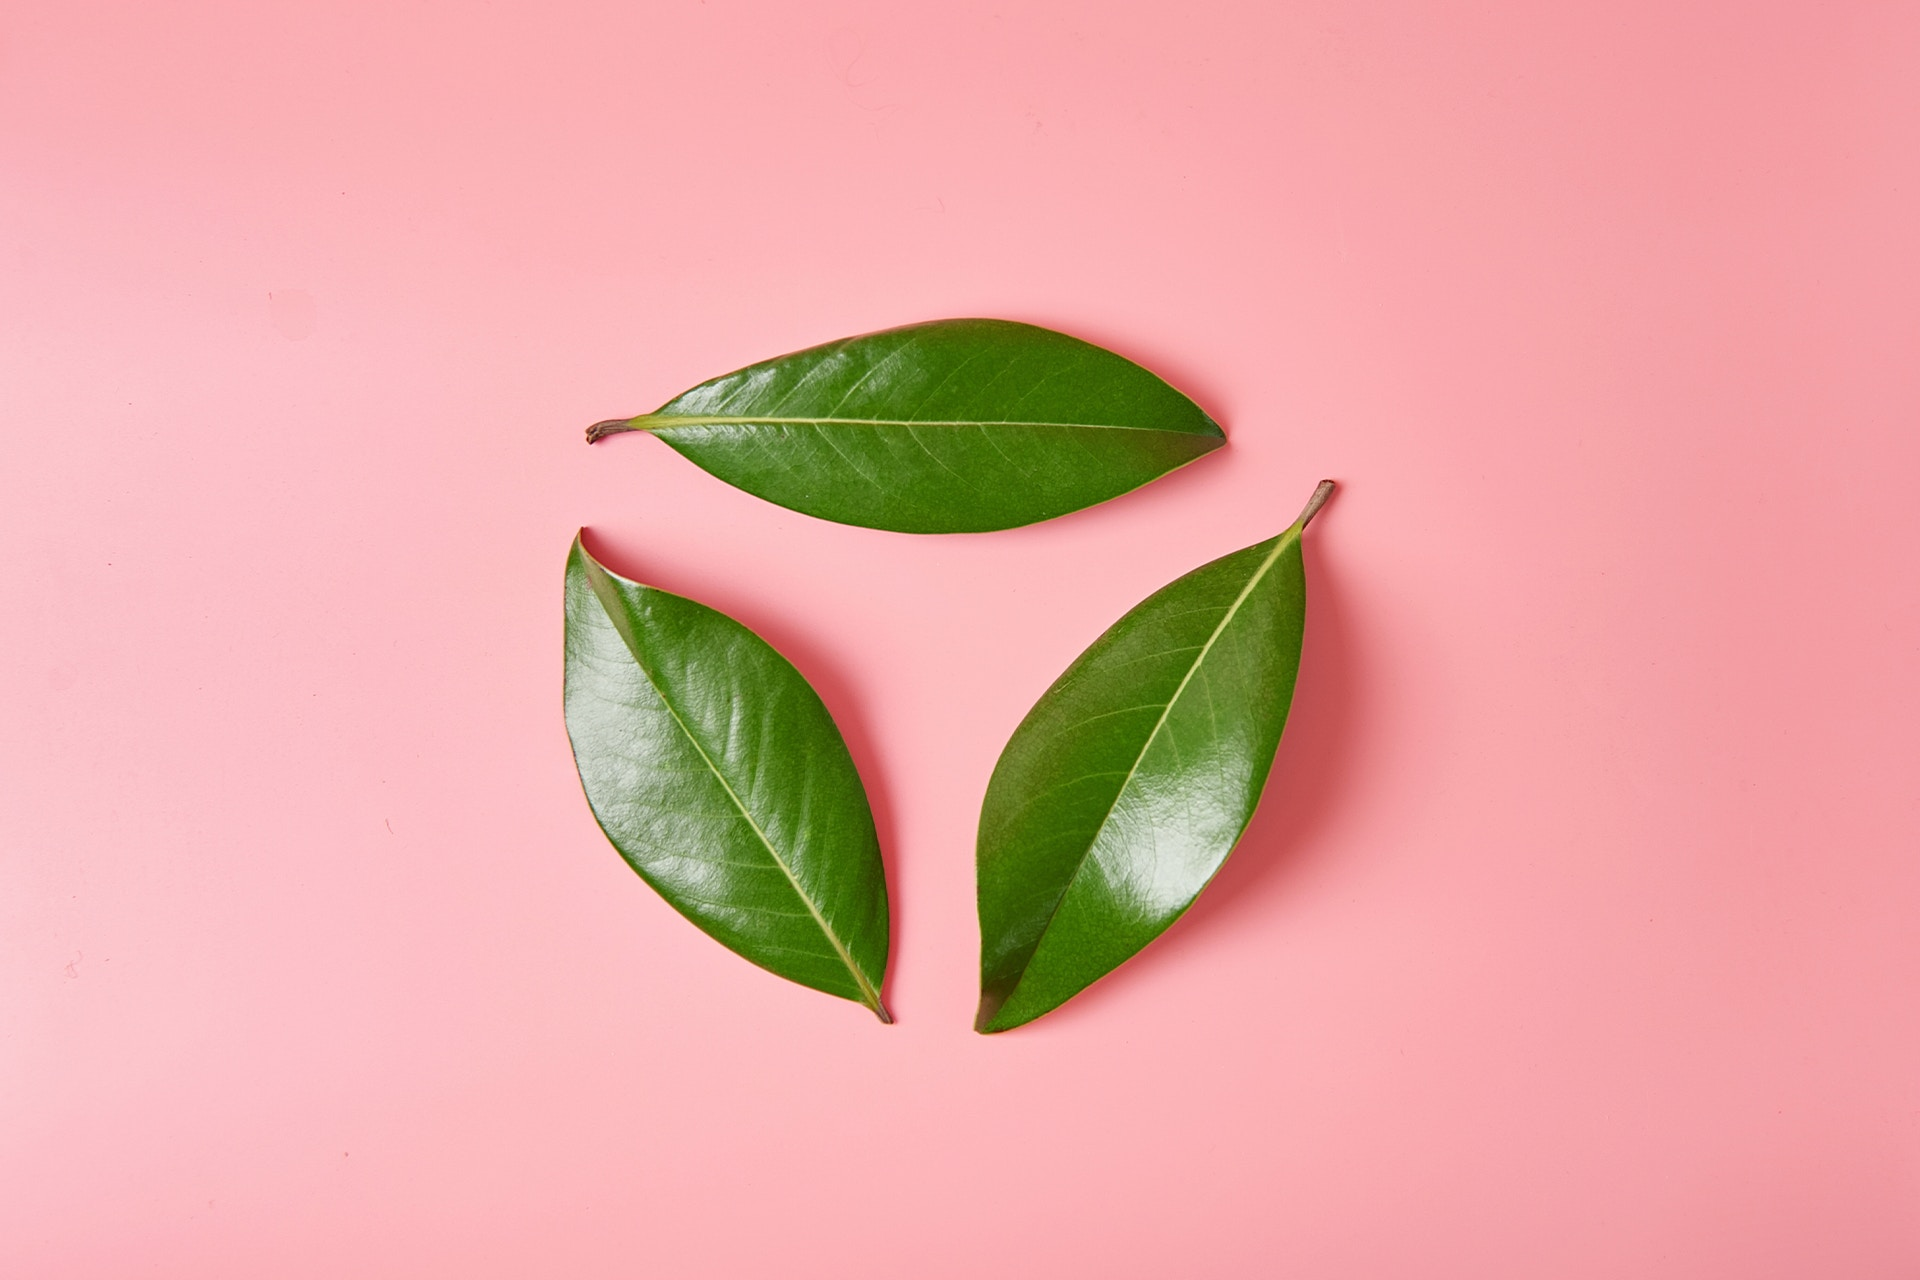 Three green leaves forming a circle on a pink background. Blog post: Environmental social media campaigns